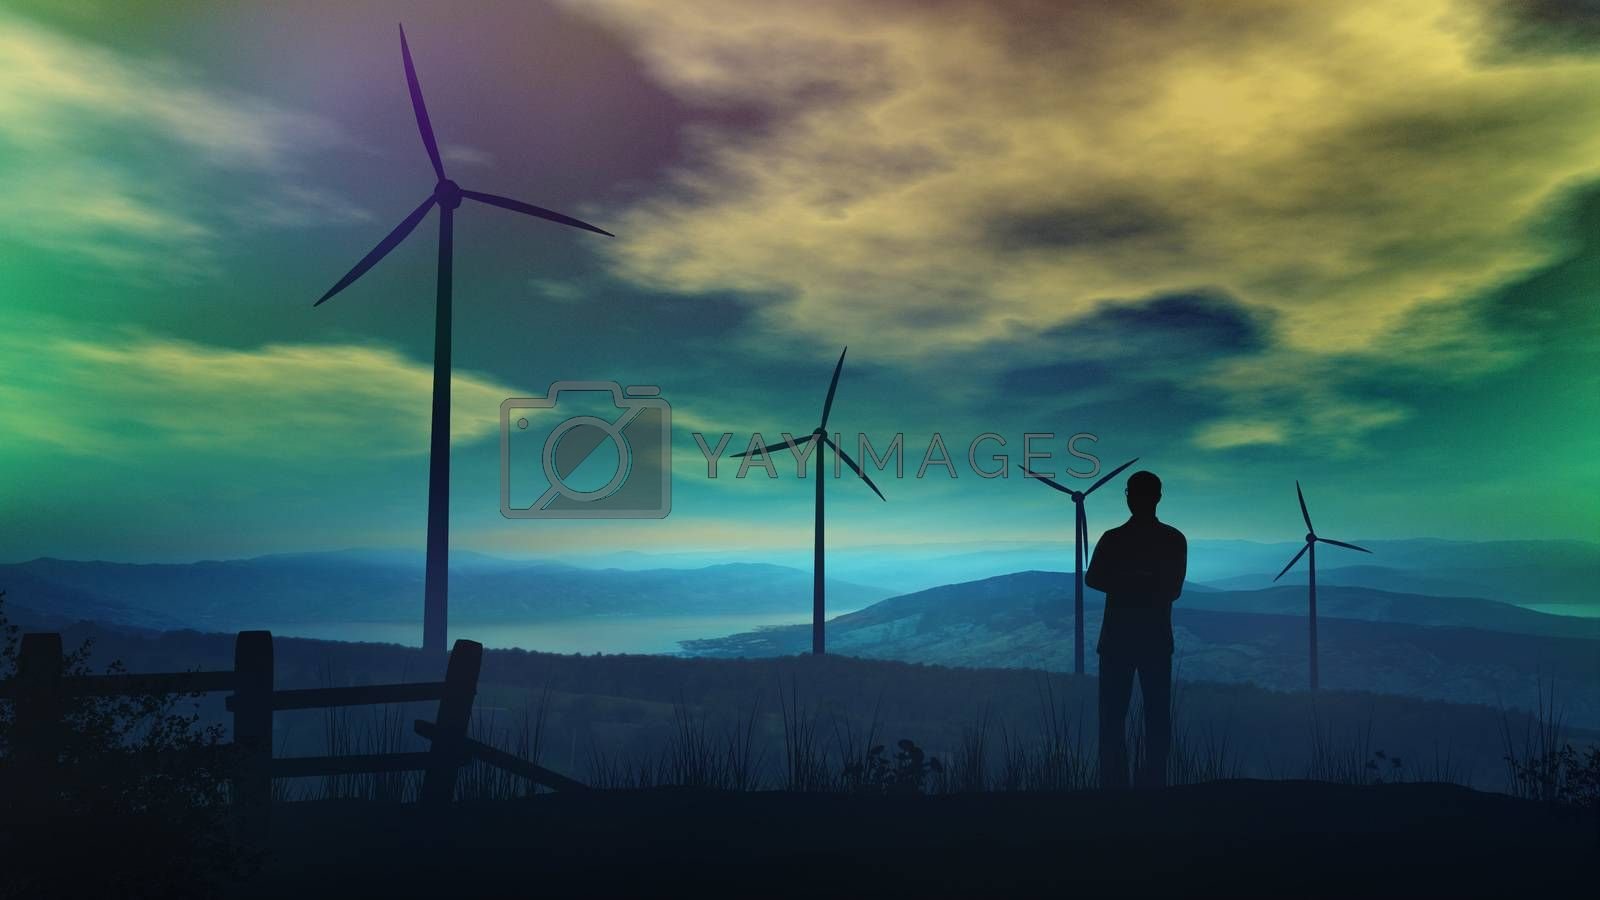 Evening landscape with wind turbines and a standing man by ConceptCafe